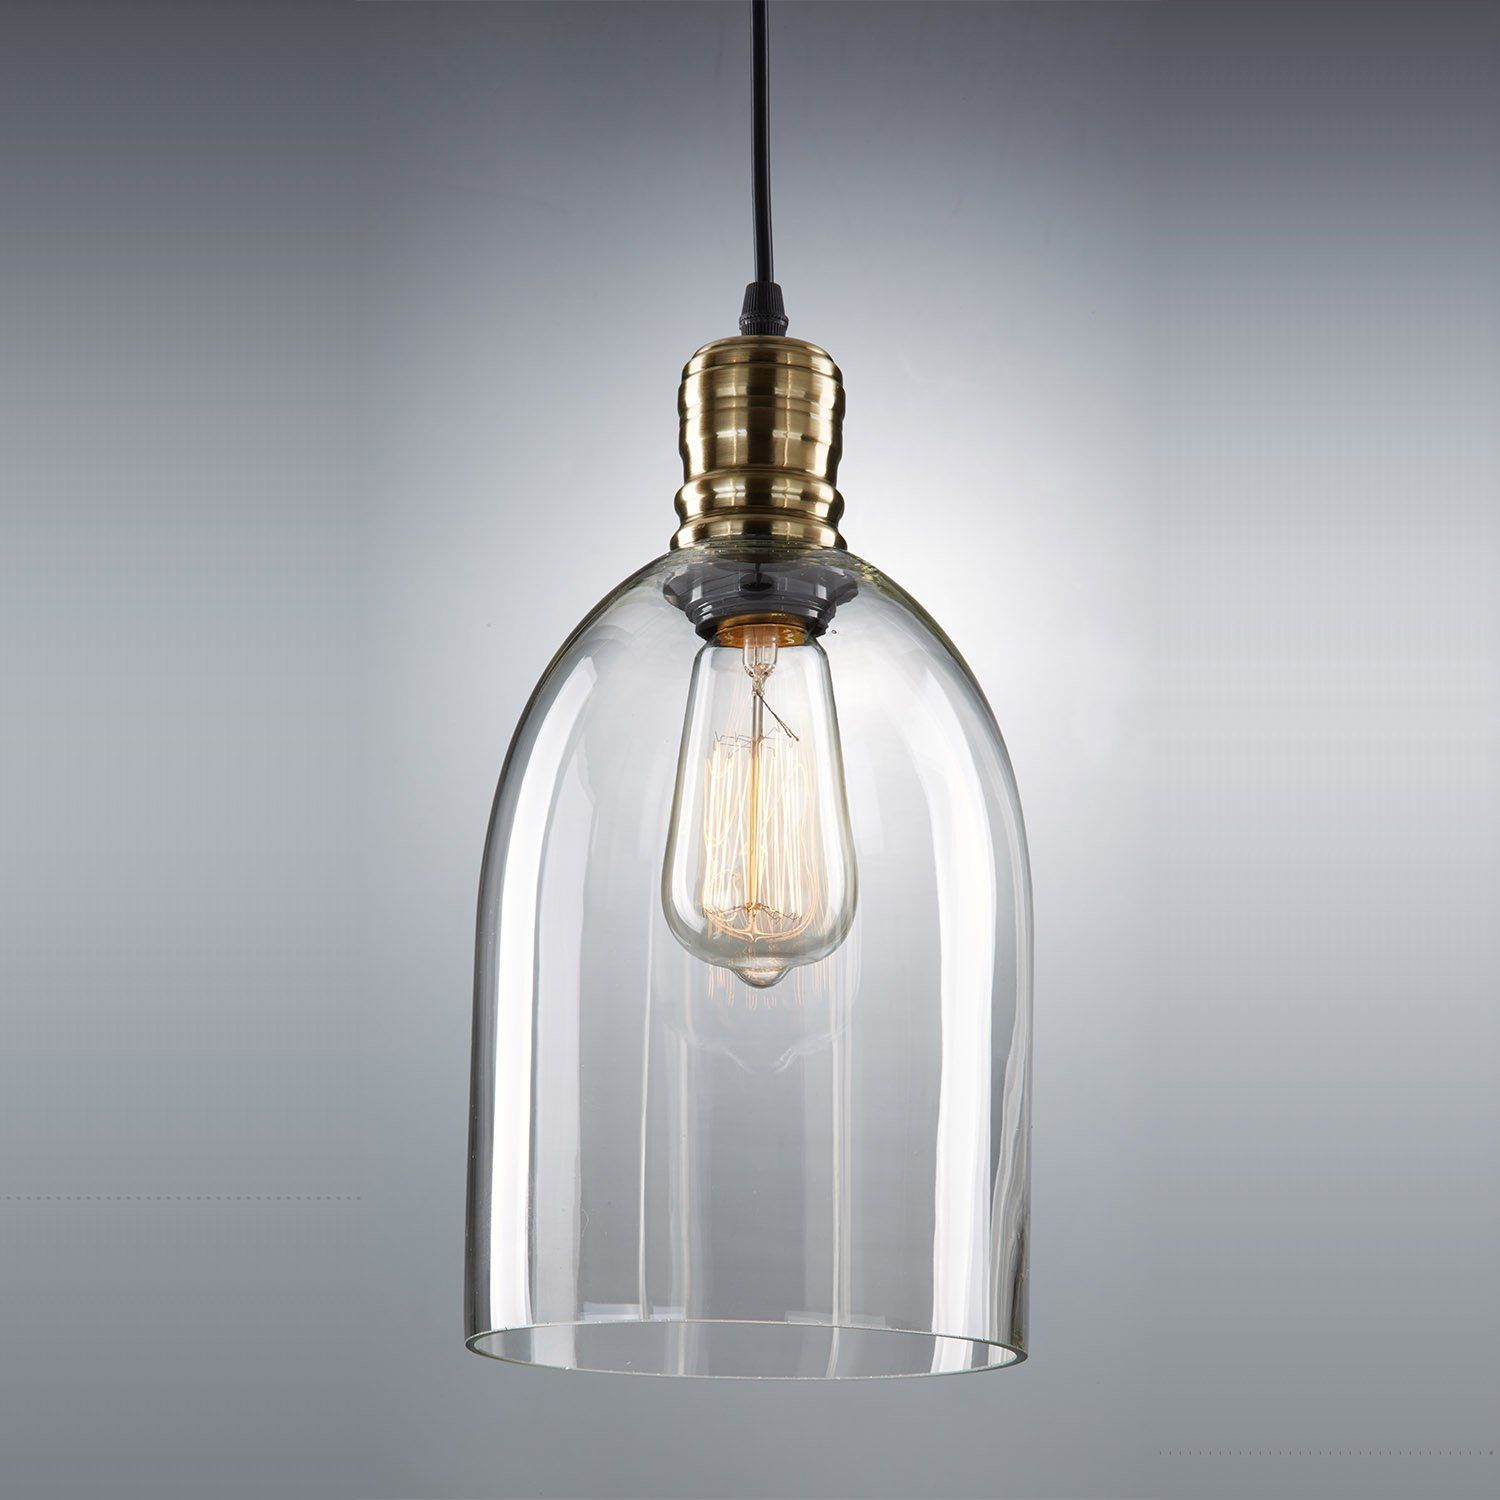 Yobo lighting industrial edison hanging vintage mini glass shade